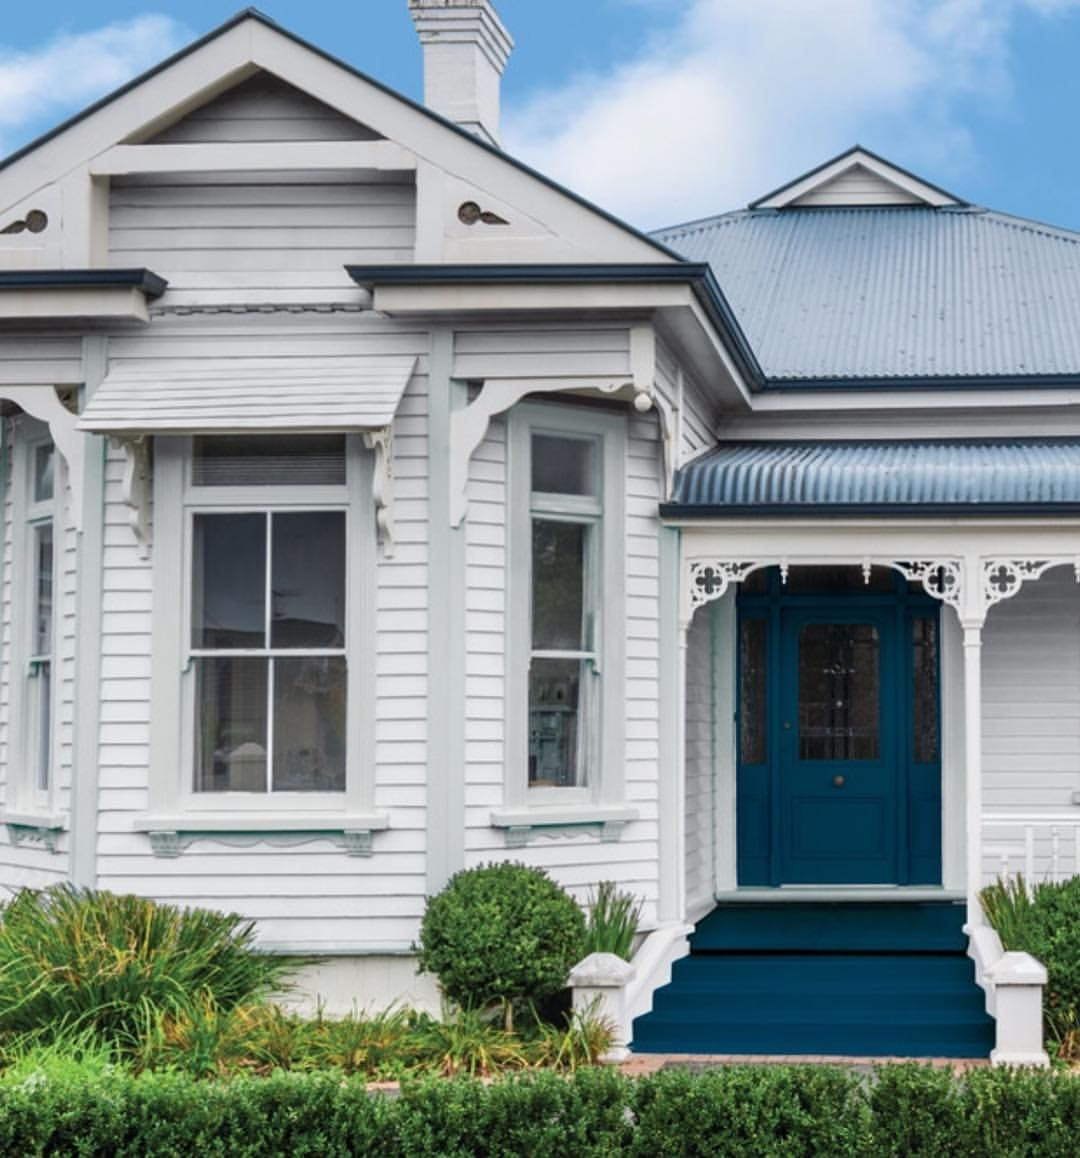 Traditional australia federation exterior inspirations paint - Exterior Colors